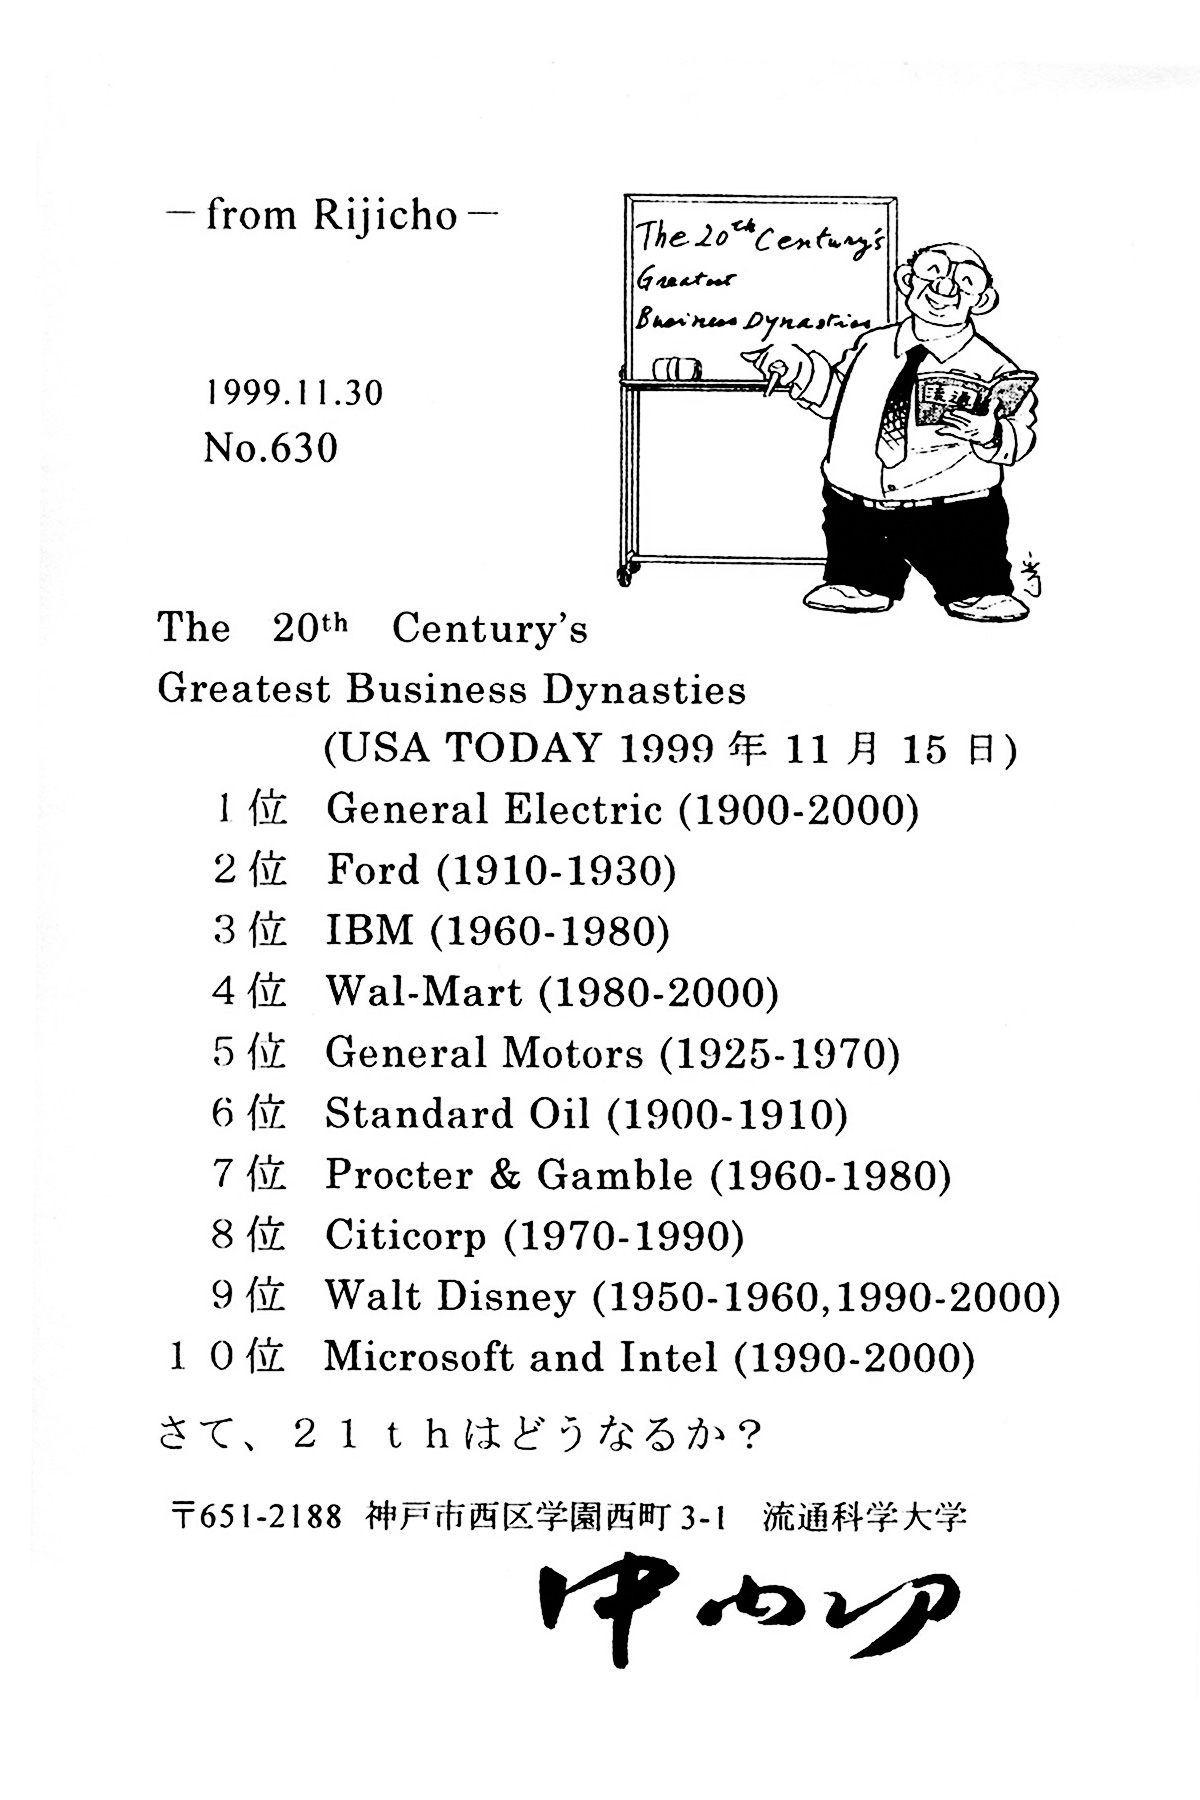 The 20th century's Greatest Business Dynasties